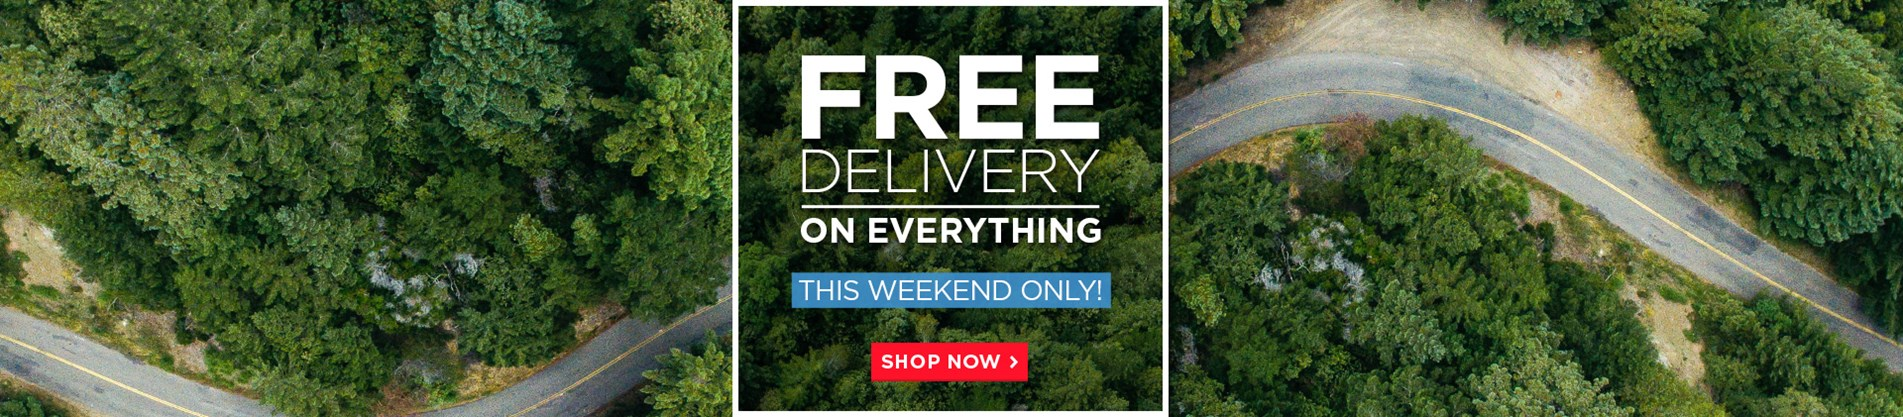 Free Delivery On Everything - This Bank Weekend Only